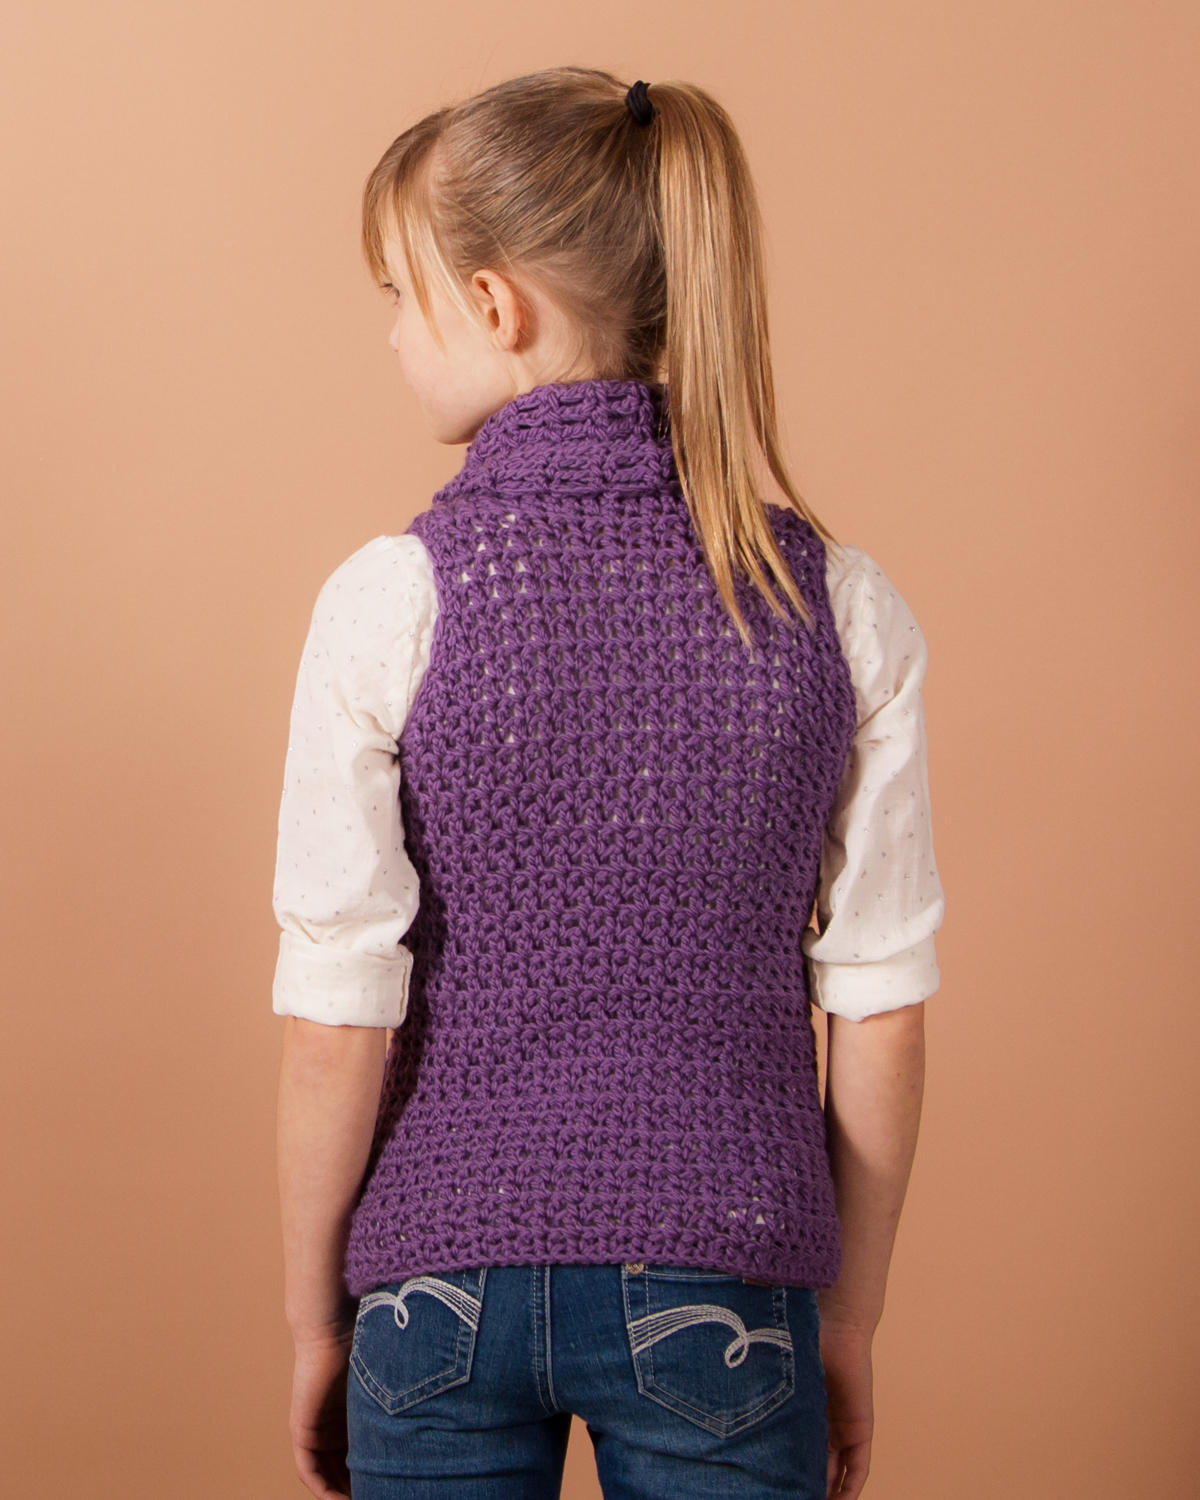 Claquato Vest Girls Crochet Pattern Kt And The Squid